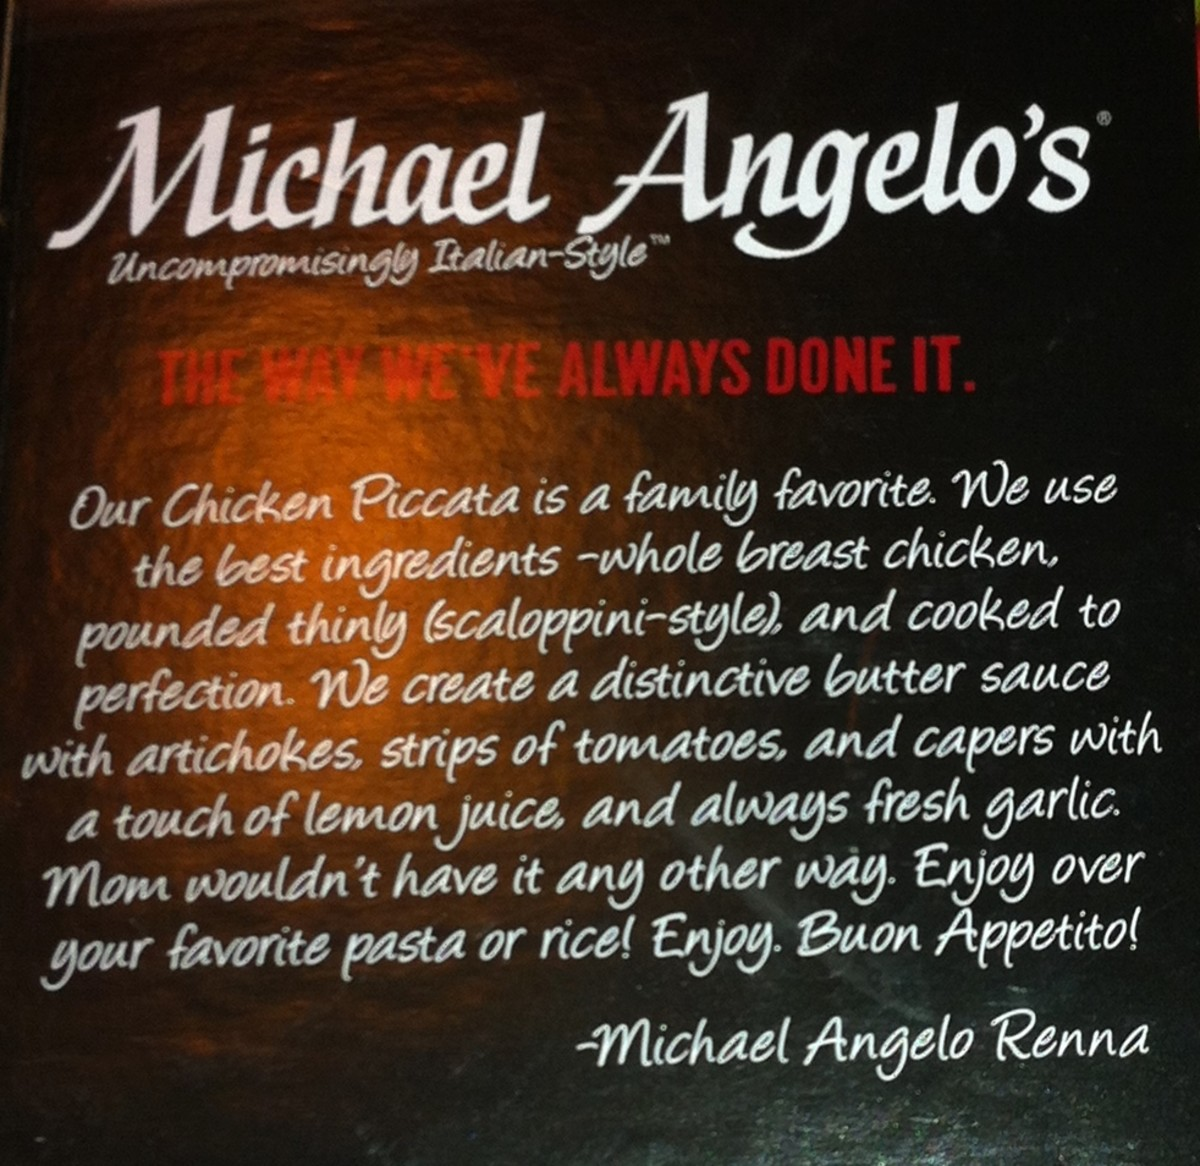 Michael Angelo's Description of the Chicken Piccata Entrée.